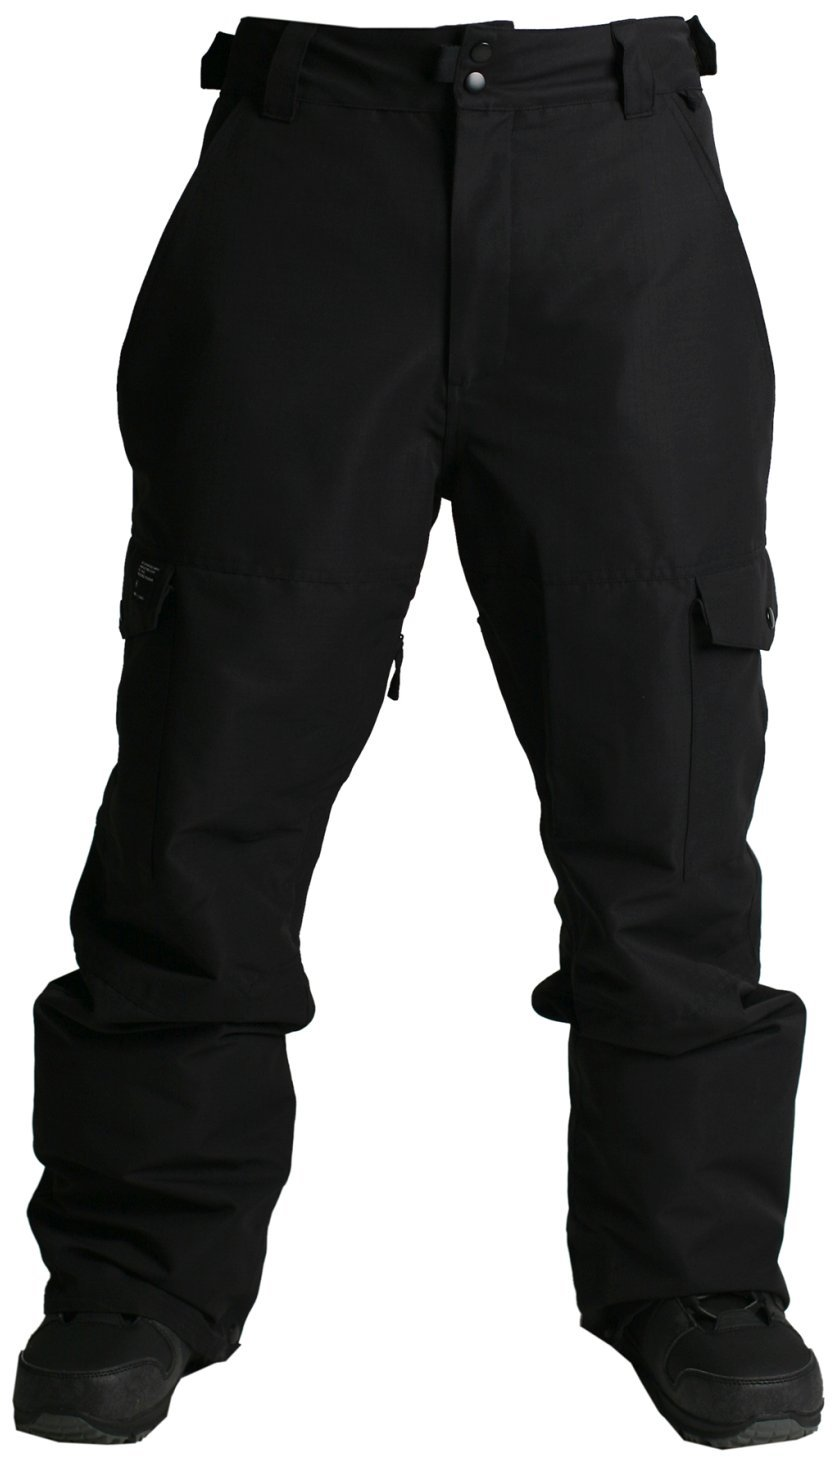 Ride Phinney Shell Pant - Men's Black Rip Stop Small